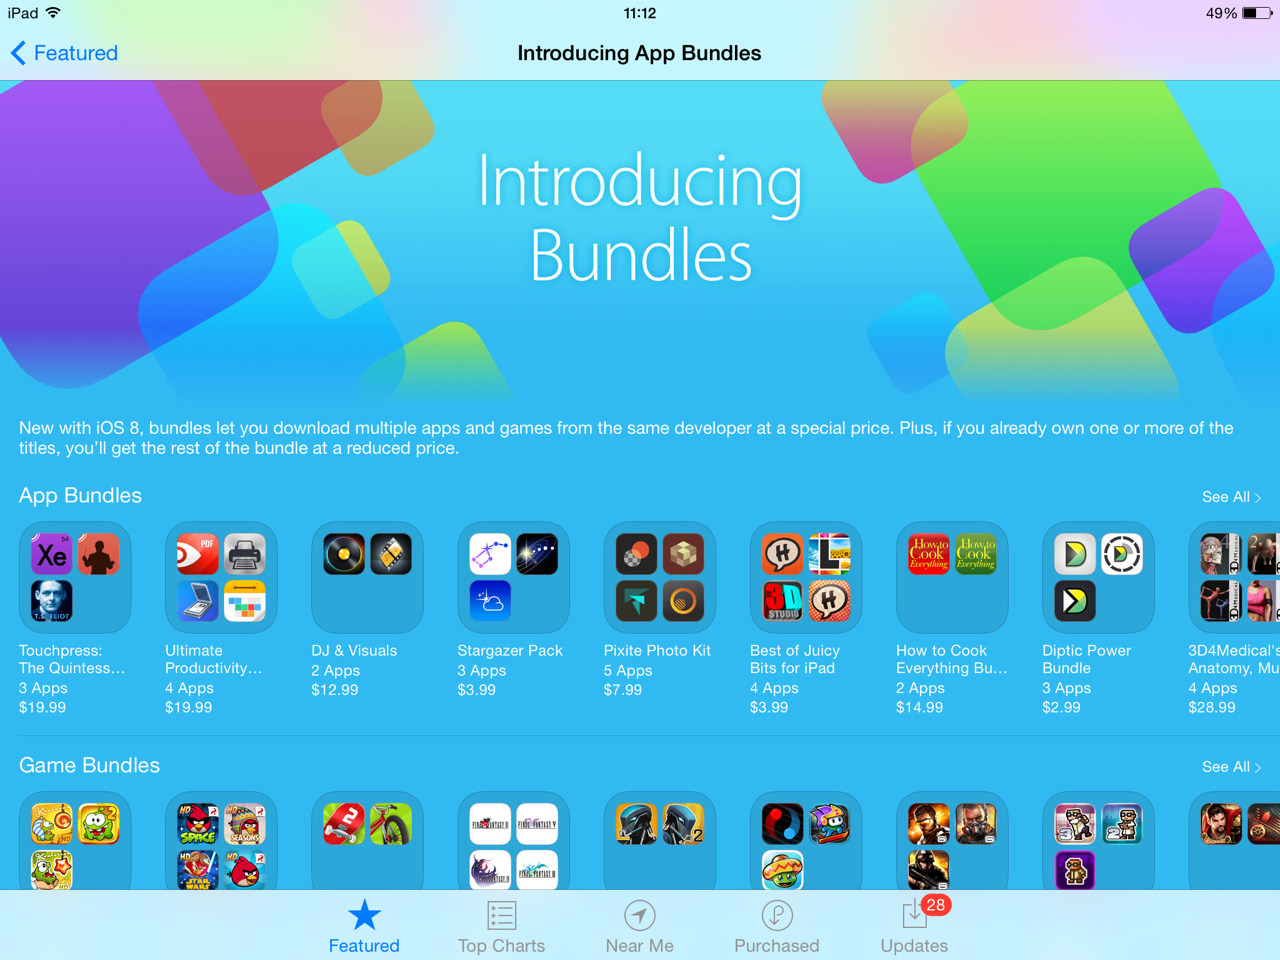 Following iOS 8's launch, Apple introduces app and game bundles on the App Store